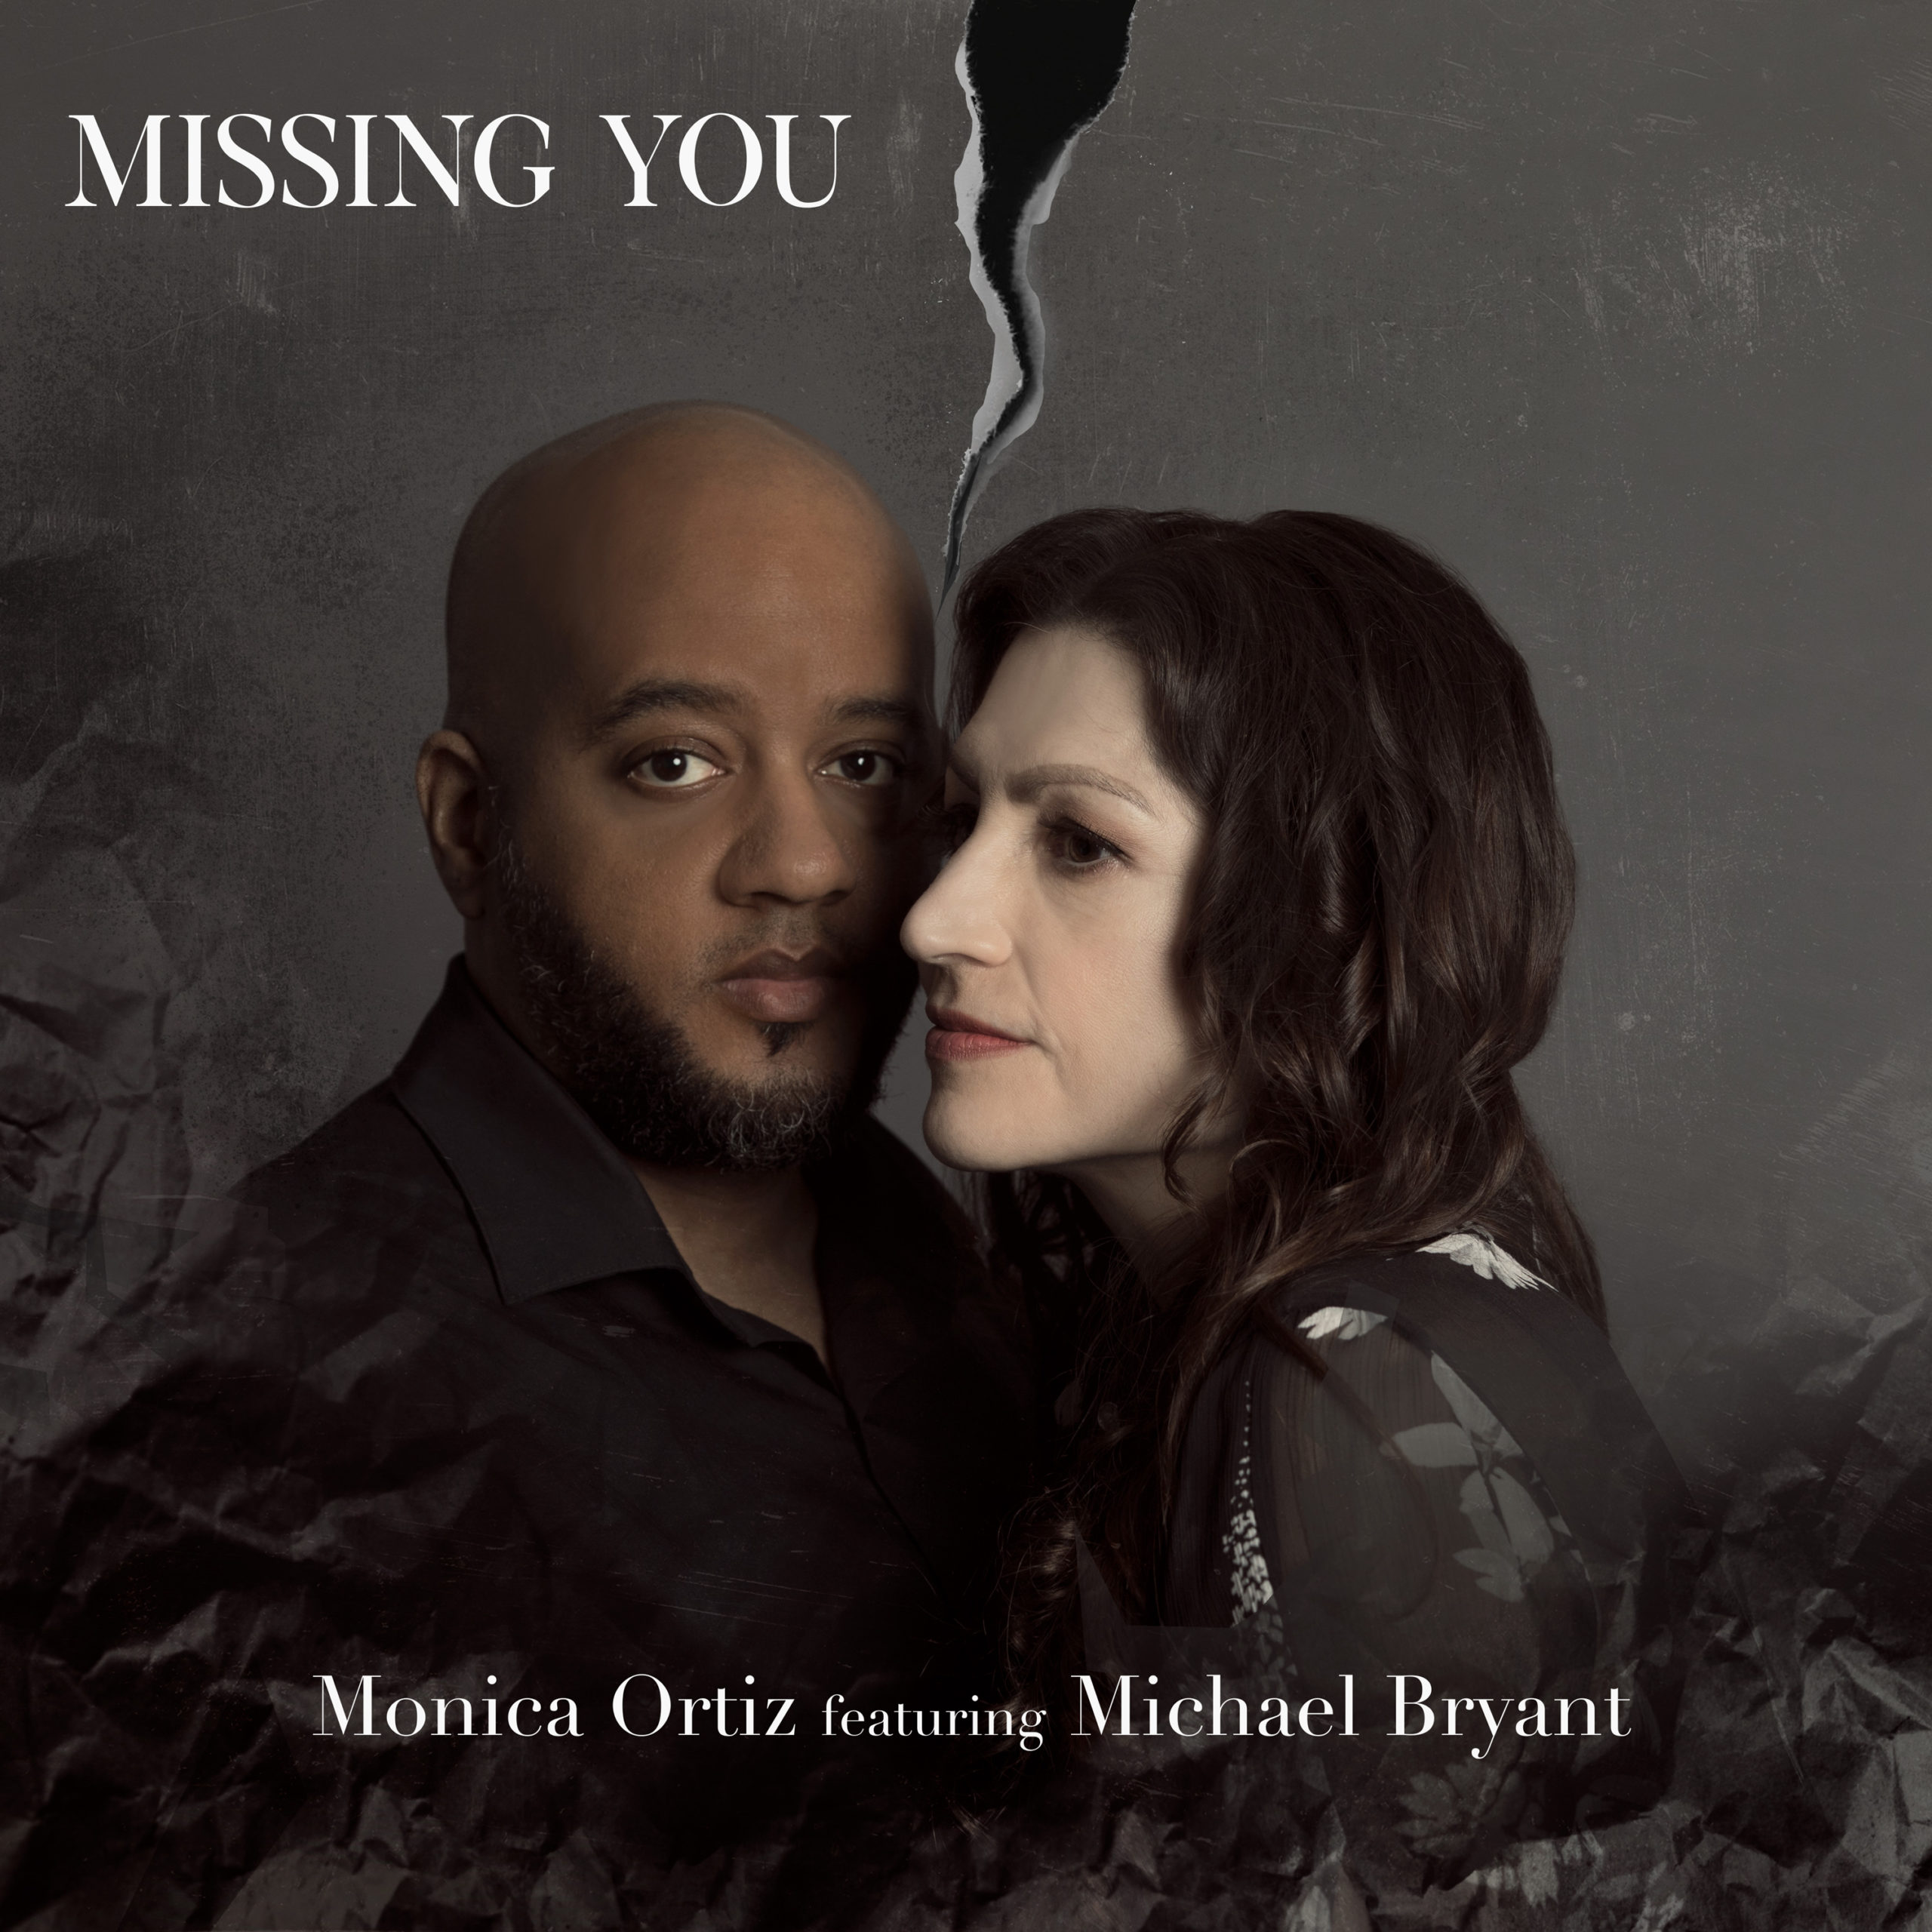 Missing You Cover - Monica Ortiz and Michael Bryant